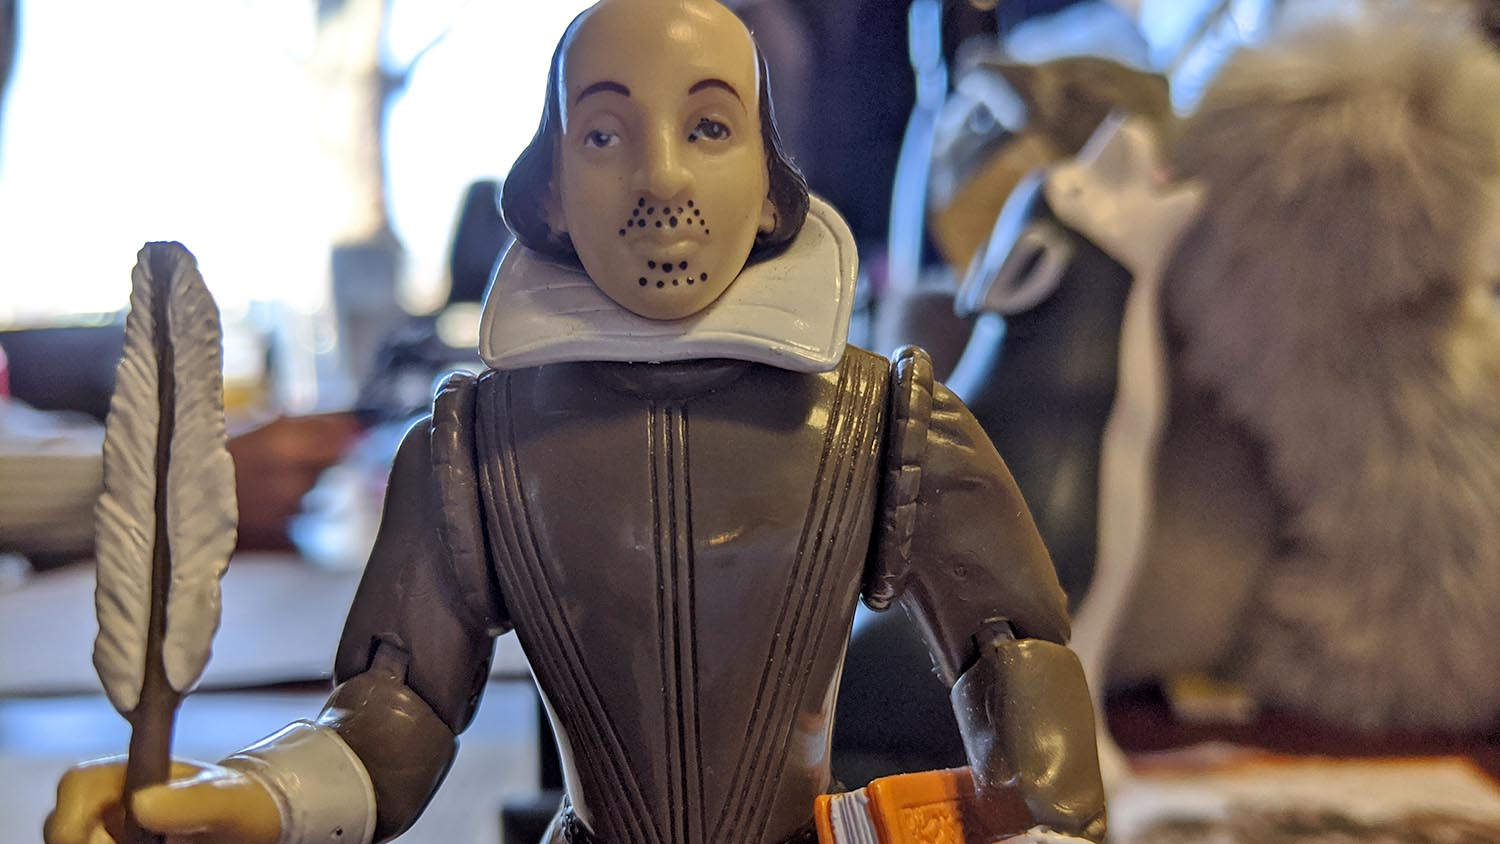 A Shakespeare figurine is pictured.